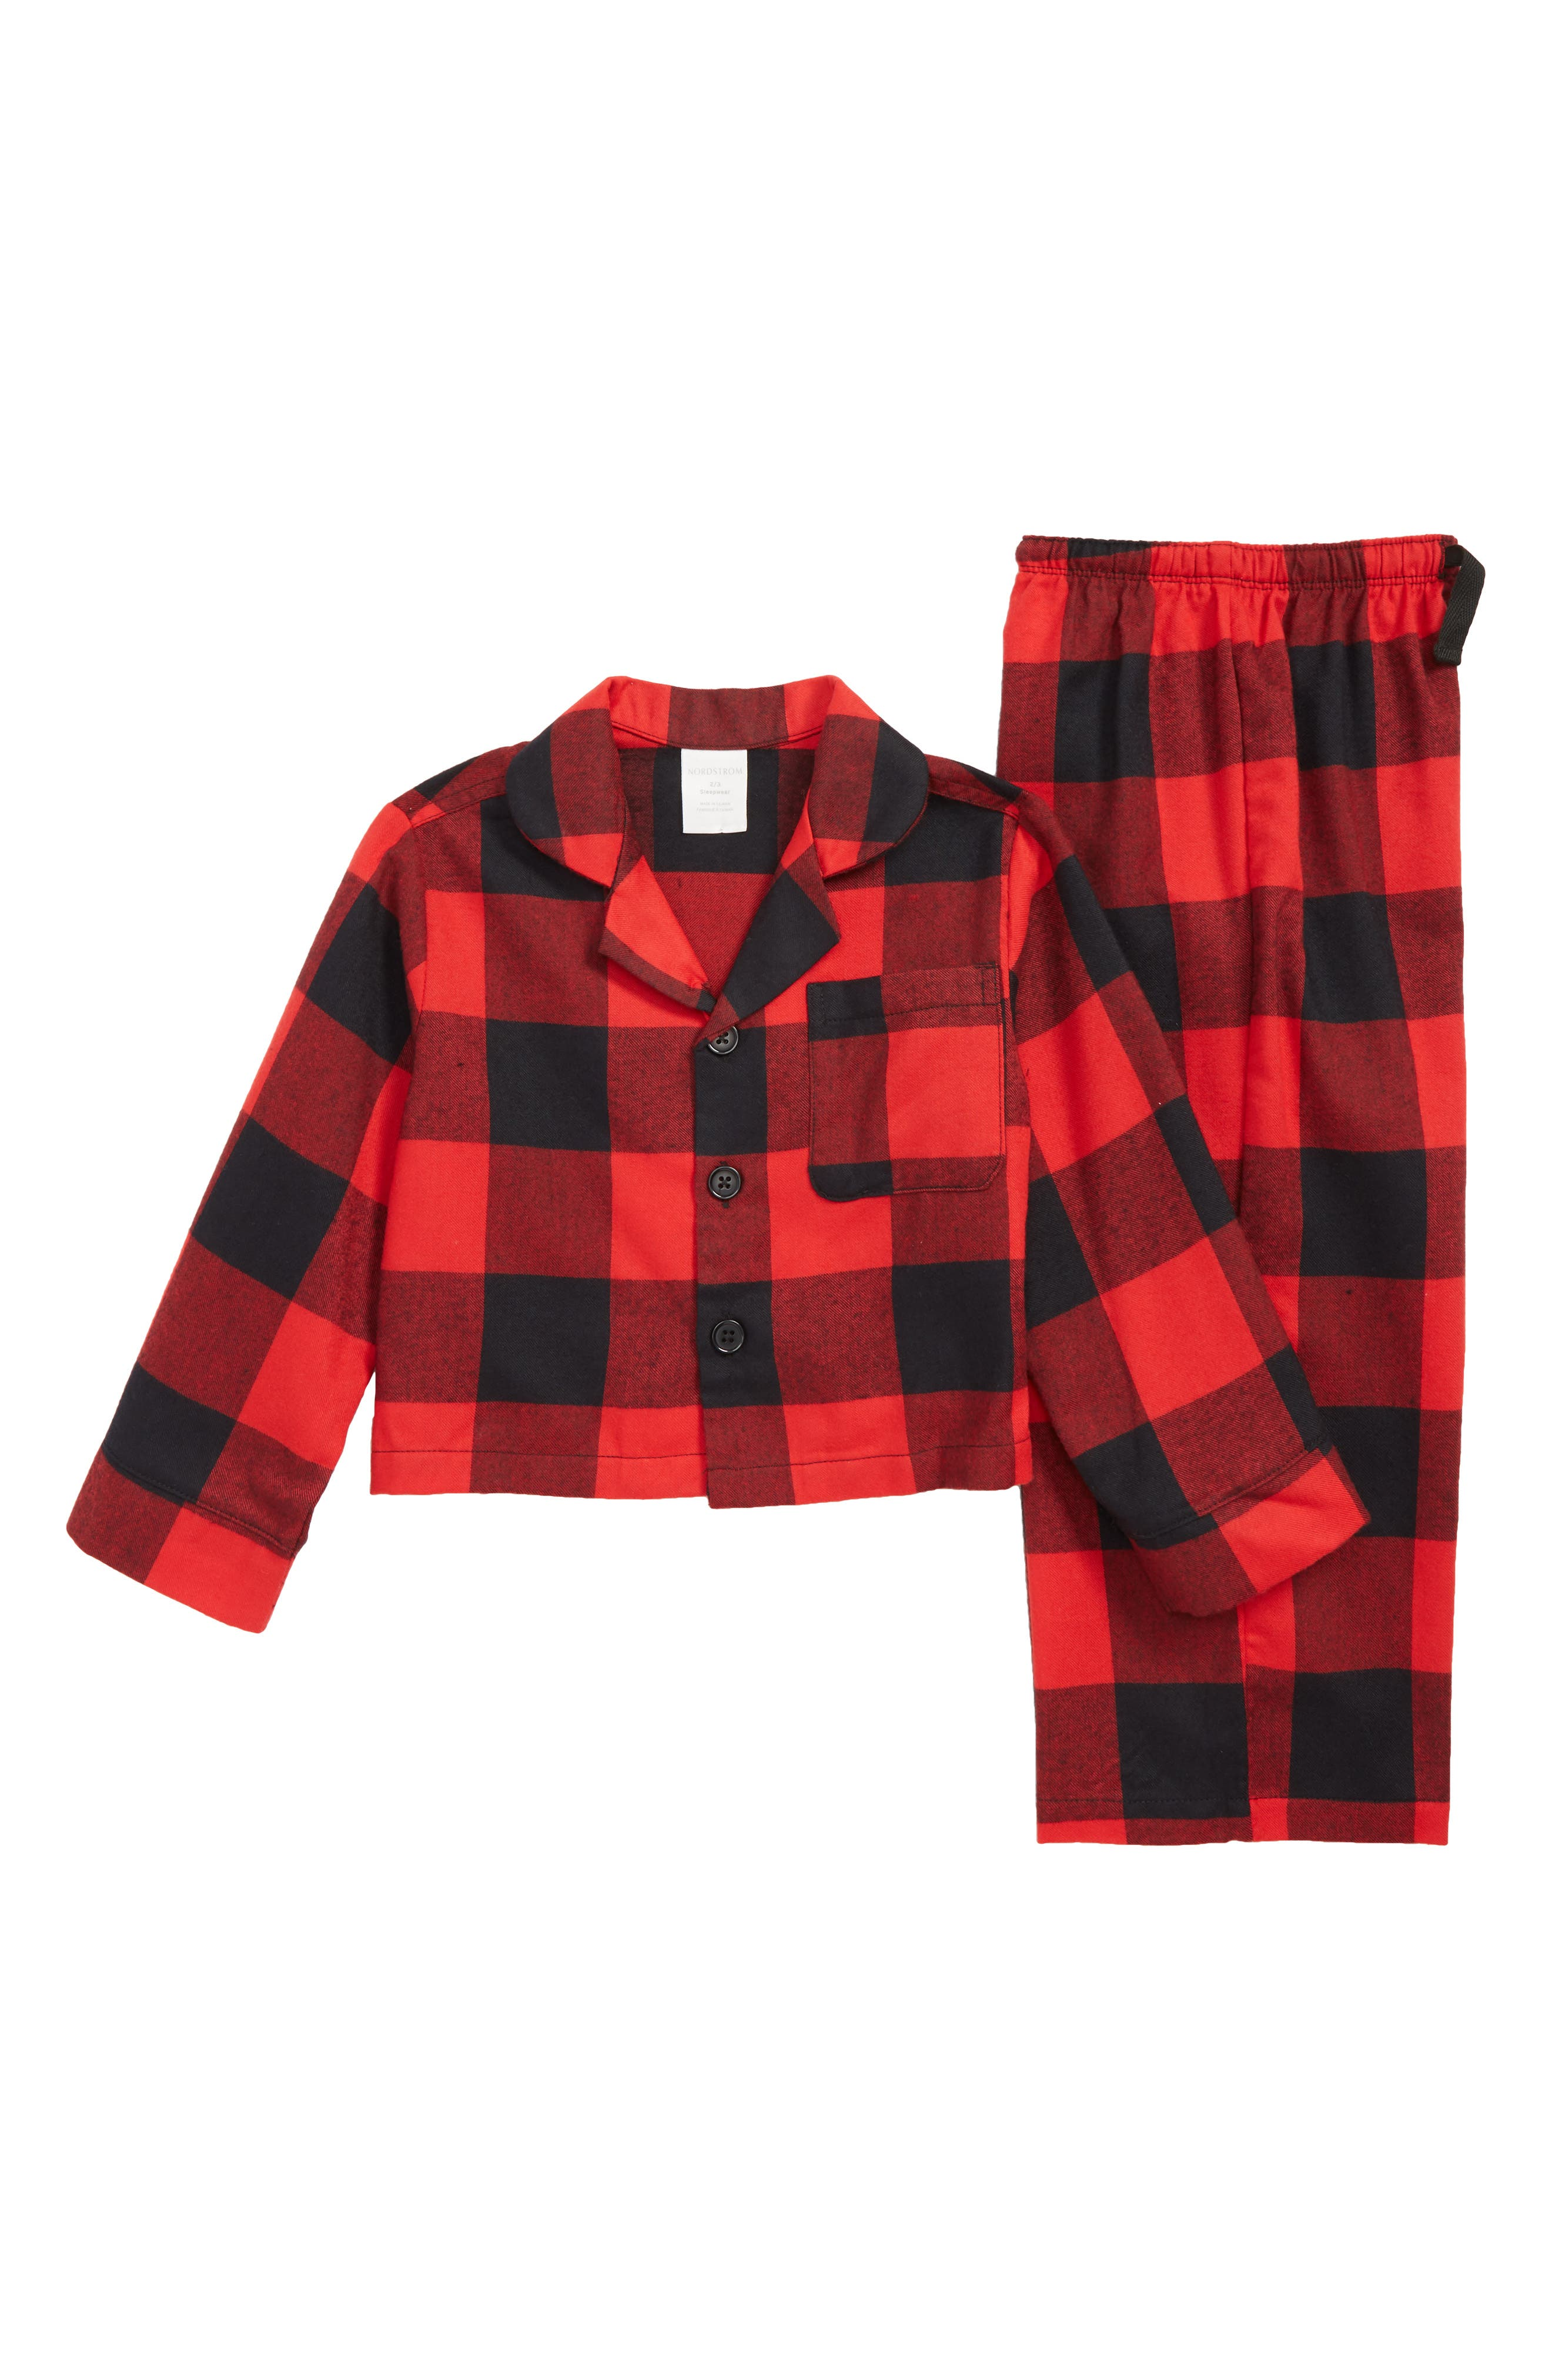 Flannel Pajamas,                         Main,                         color, RED BLOOM LARGE BUFFALO CHECK